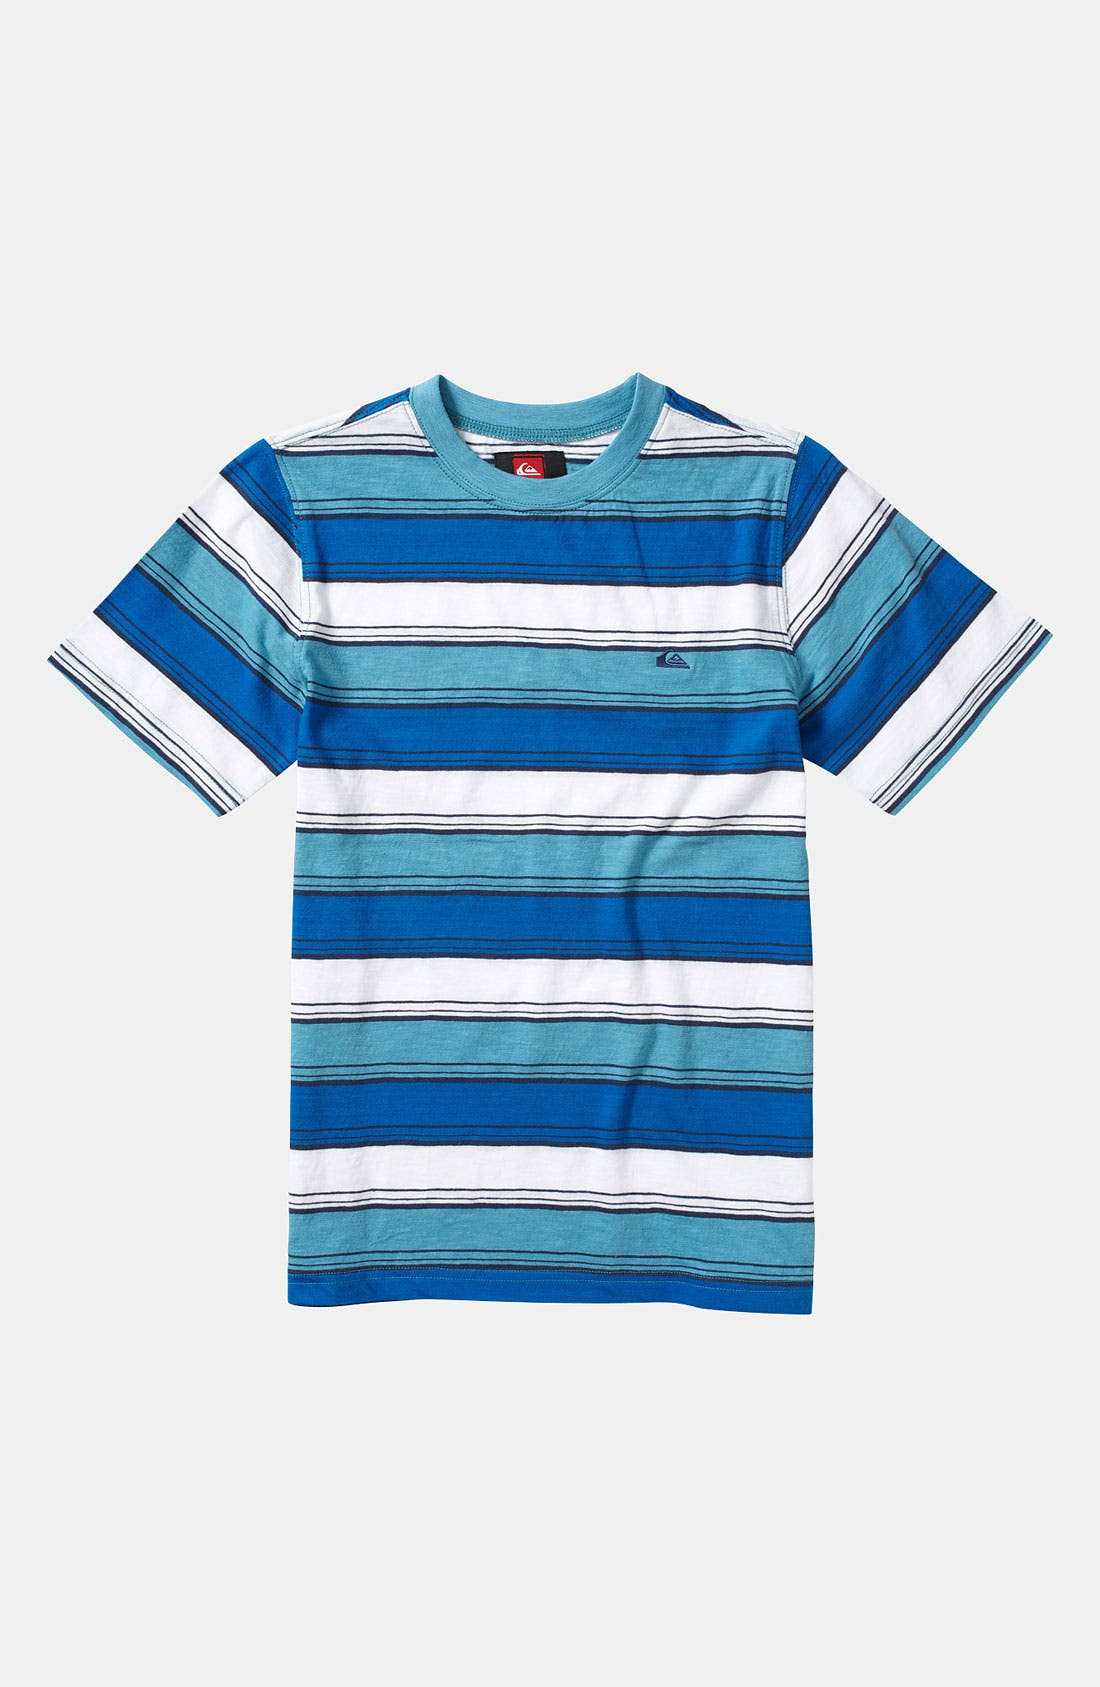 Alternate Image 1 Selected - Quiksilver 'Downside' Stripe Shirt (Toddler)